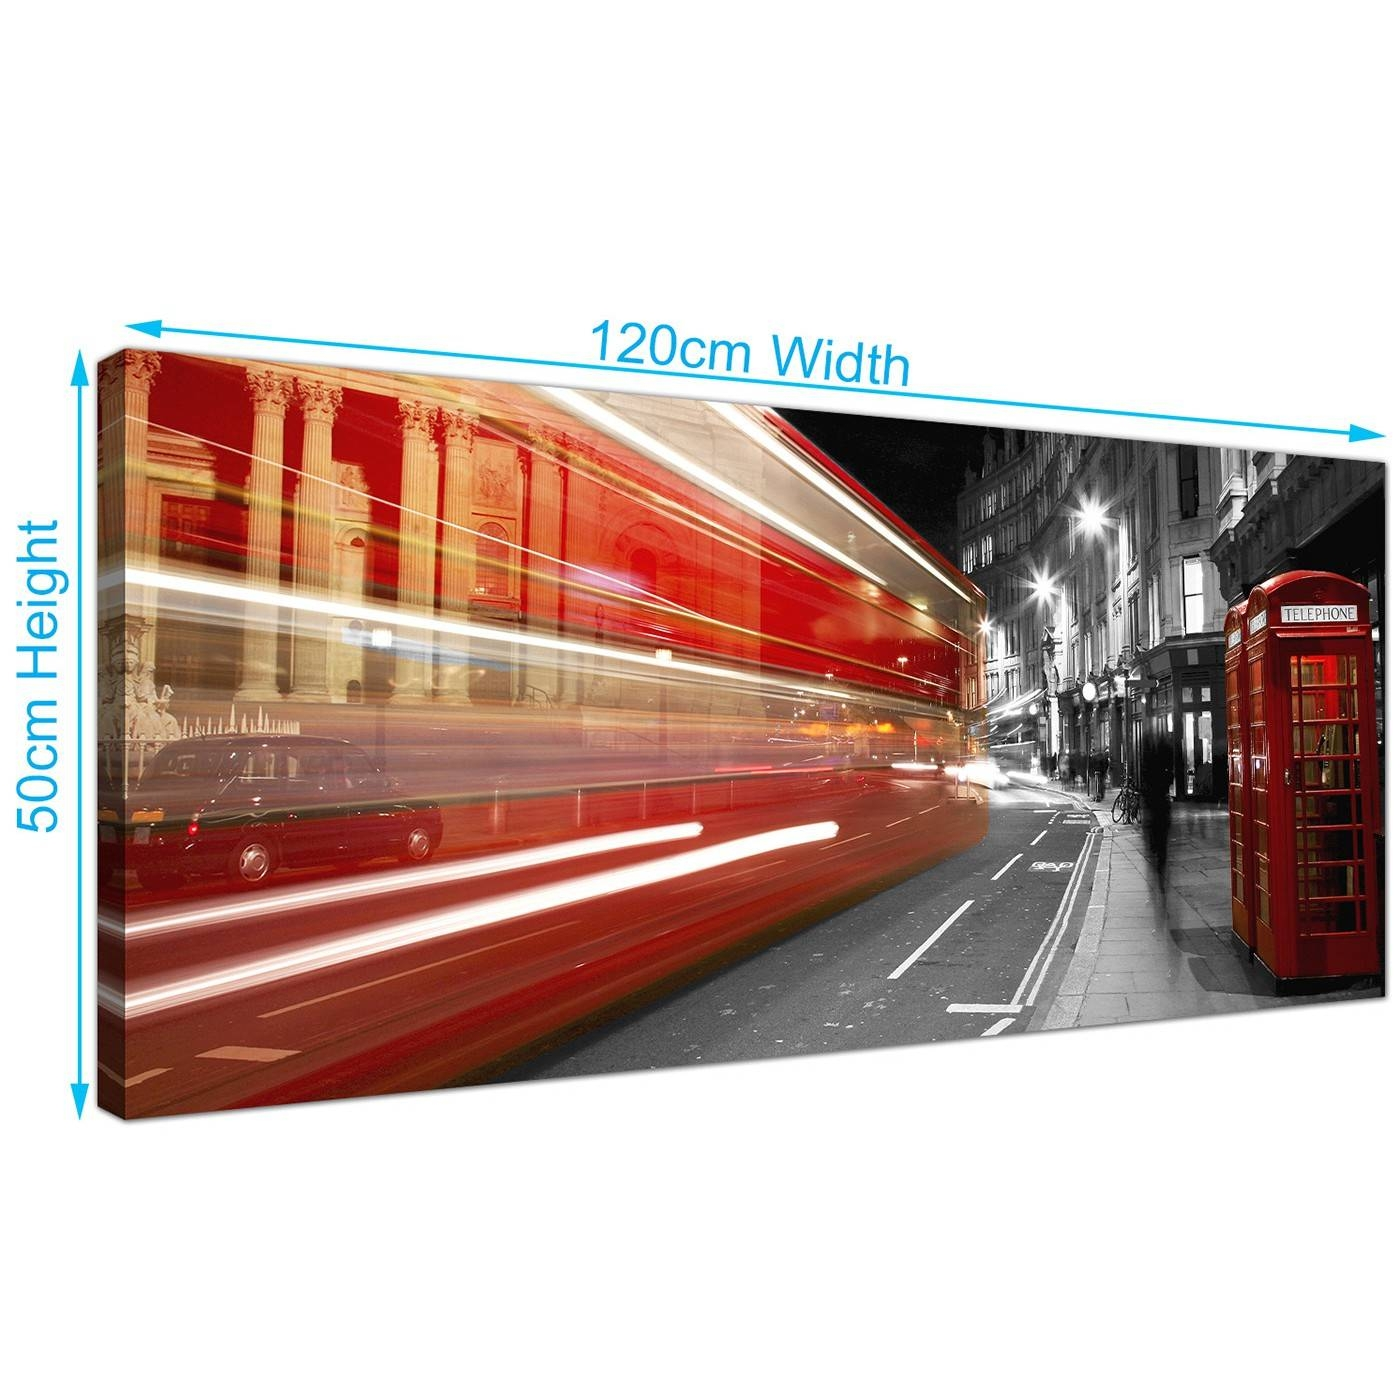 Modern Black And White Canvas Wall Art Of A Red London City Night Bus Within Most Recent London Scene Wall Art (View 12 of 20)